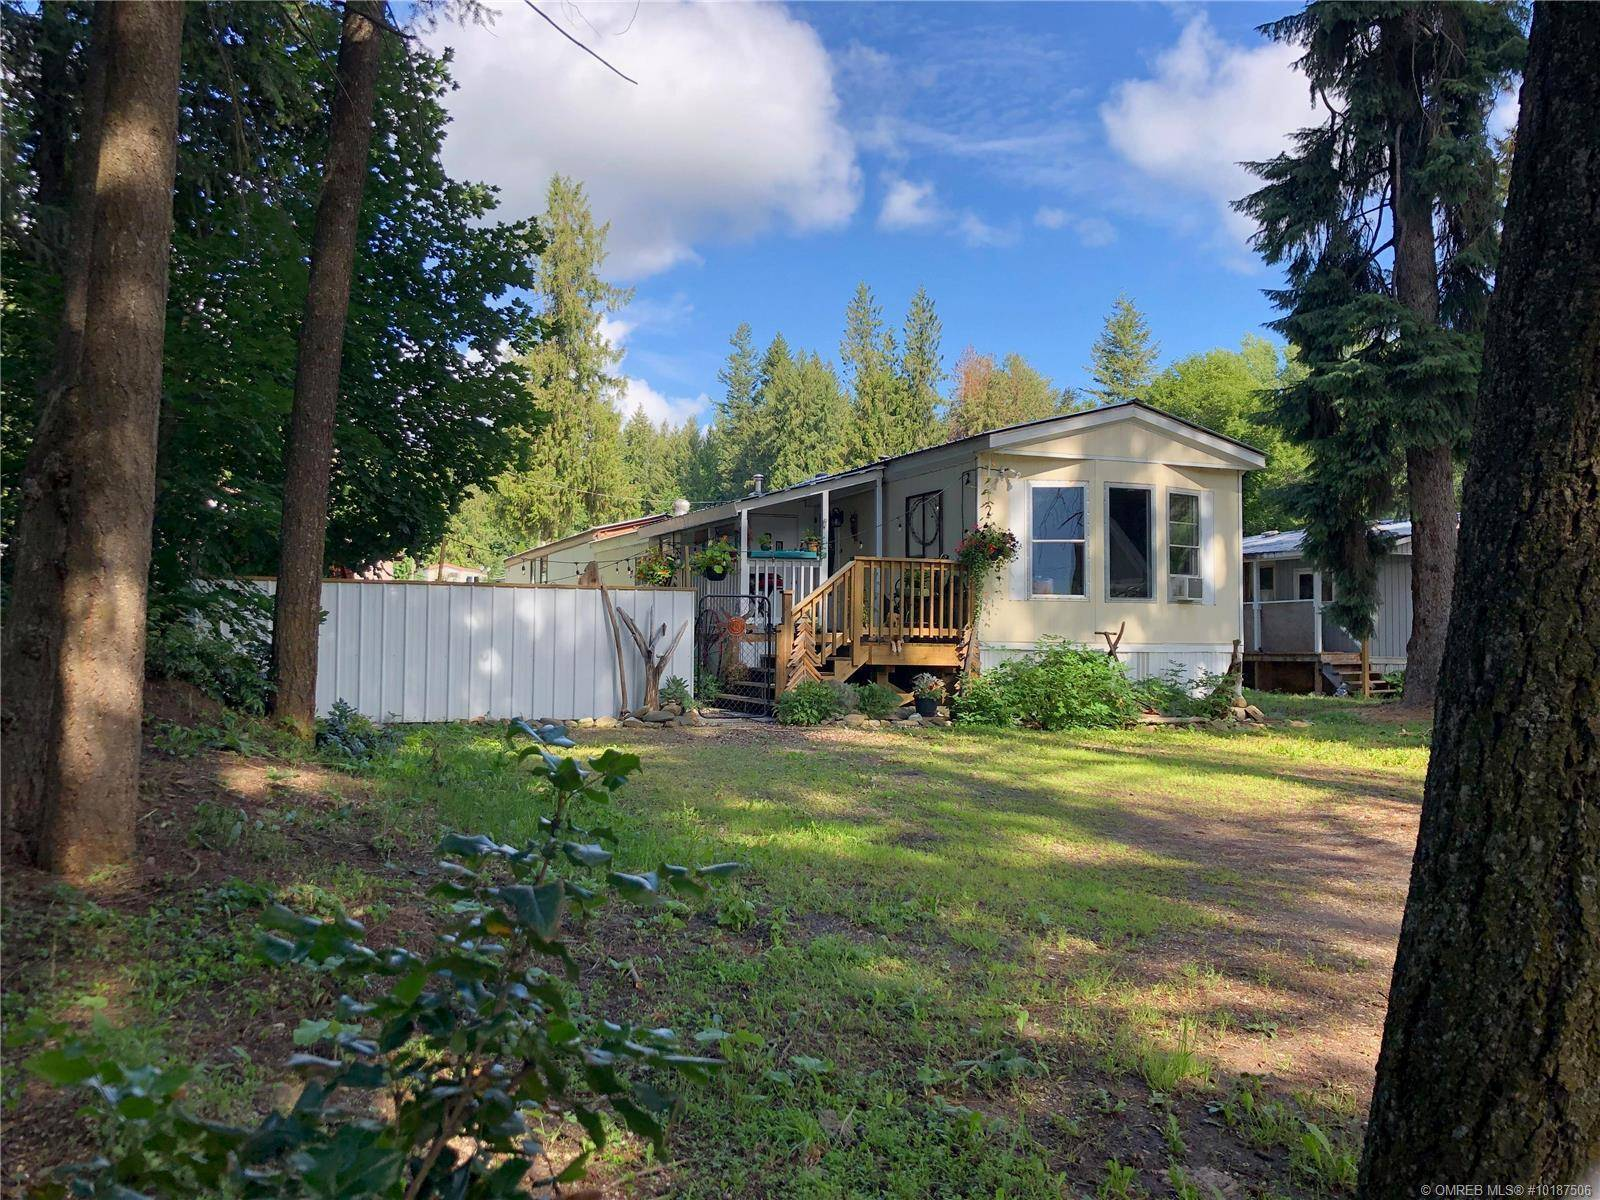 Home for sale at 6588 97a Hy Unit 3 Enderby British Columbia - MLS: 10187506